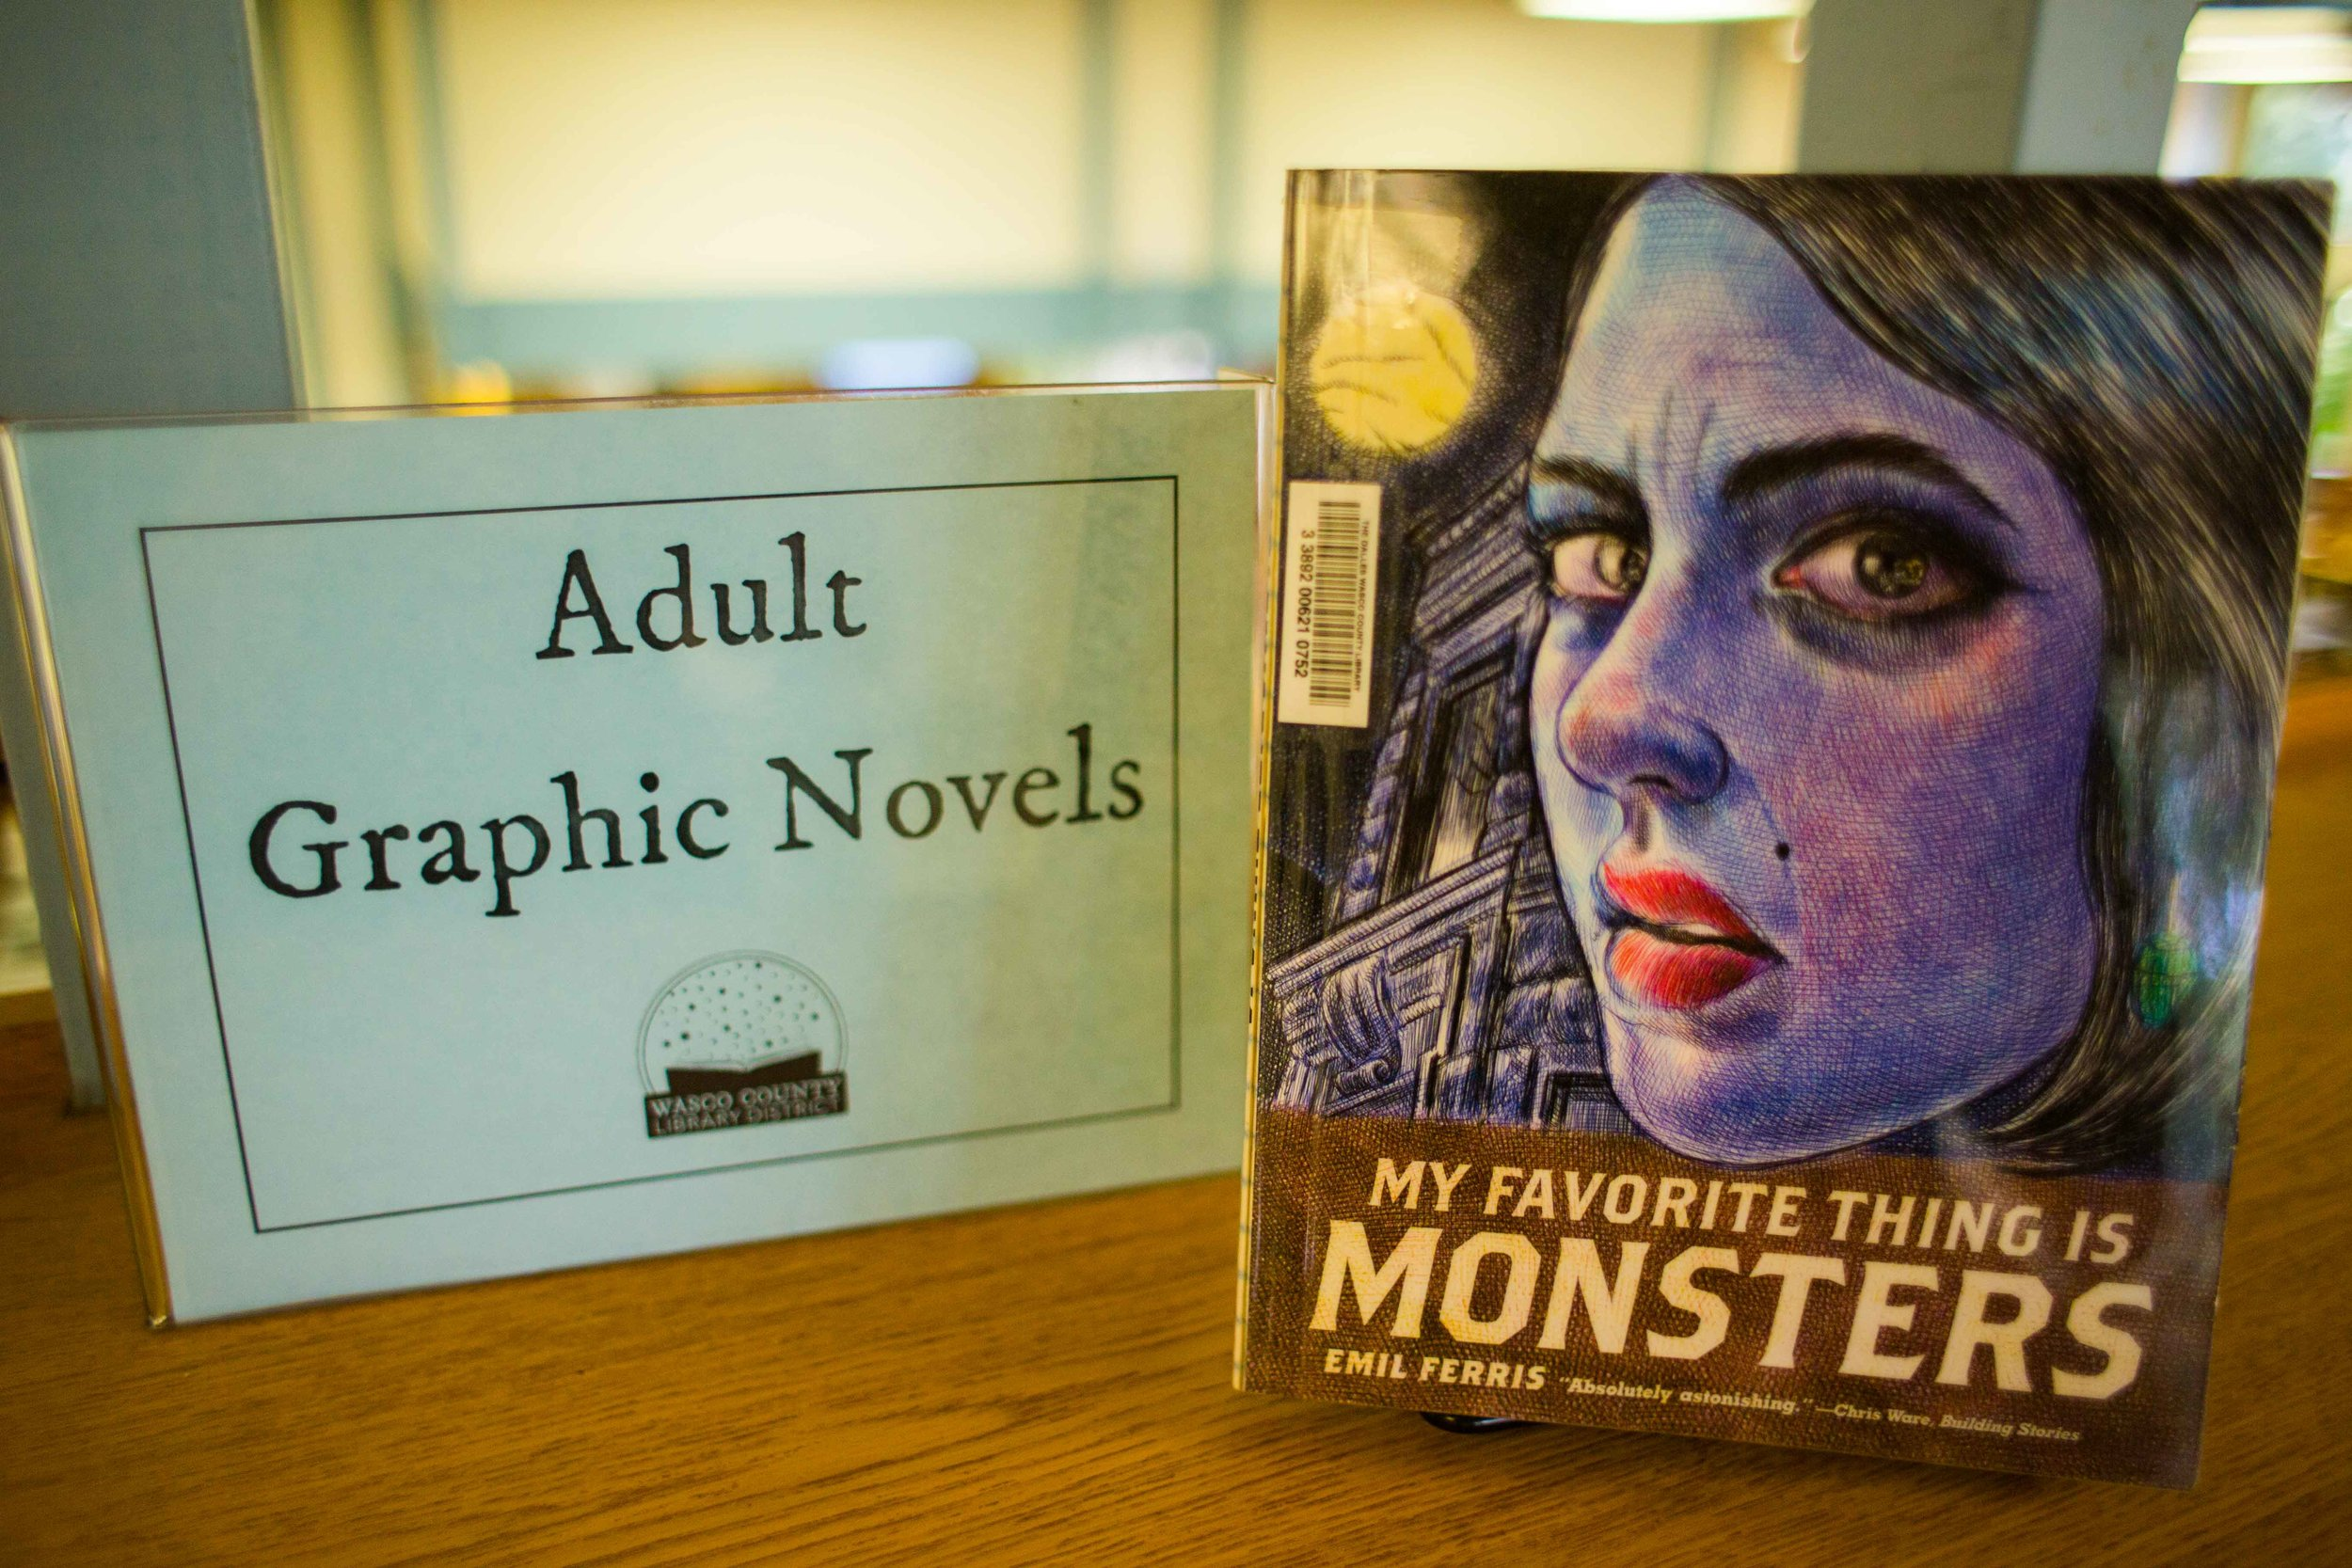 graphic-novels-the-dalles-columbia-river-gorge-comics-adult-community-audio-books-services-public-library-cd-tape-mp3